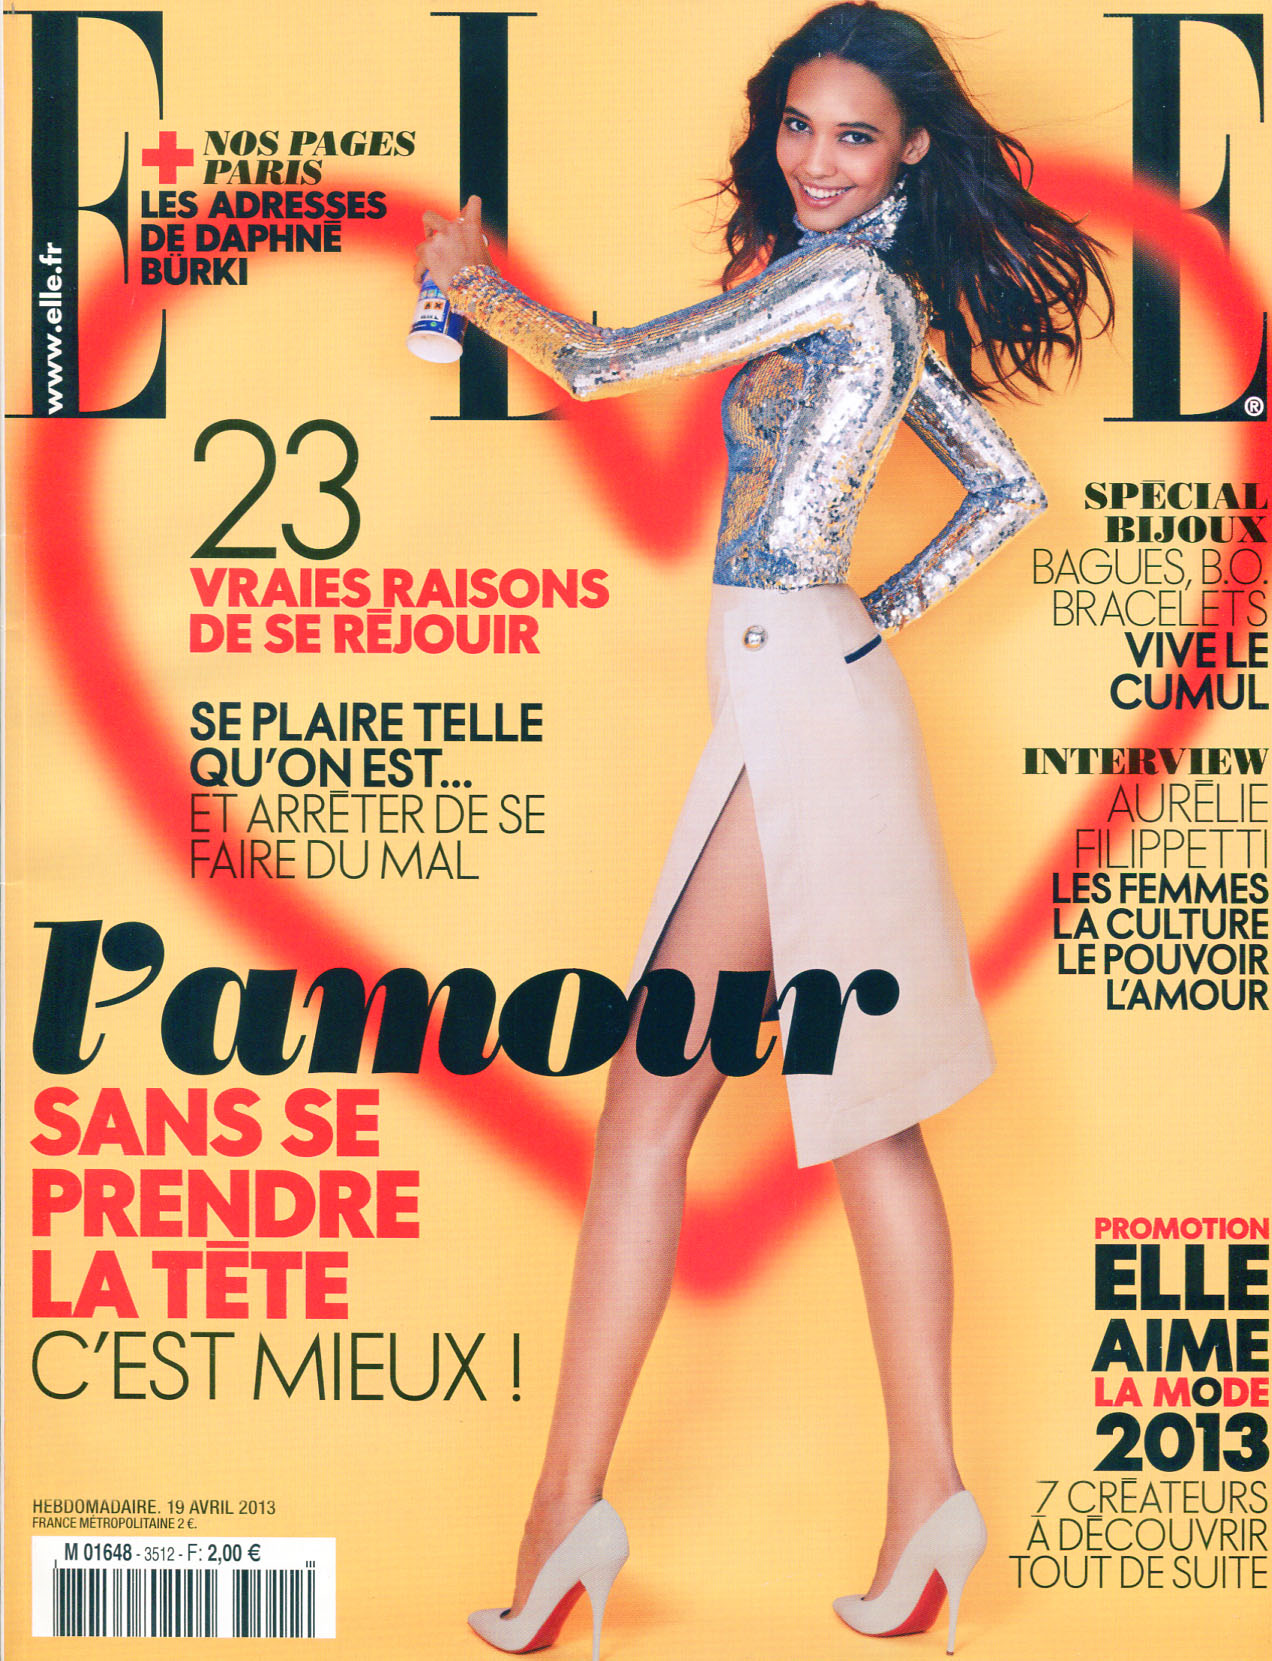 French model with glamorous looks Cora Emmanuel on the cover of Elle magazine